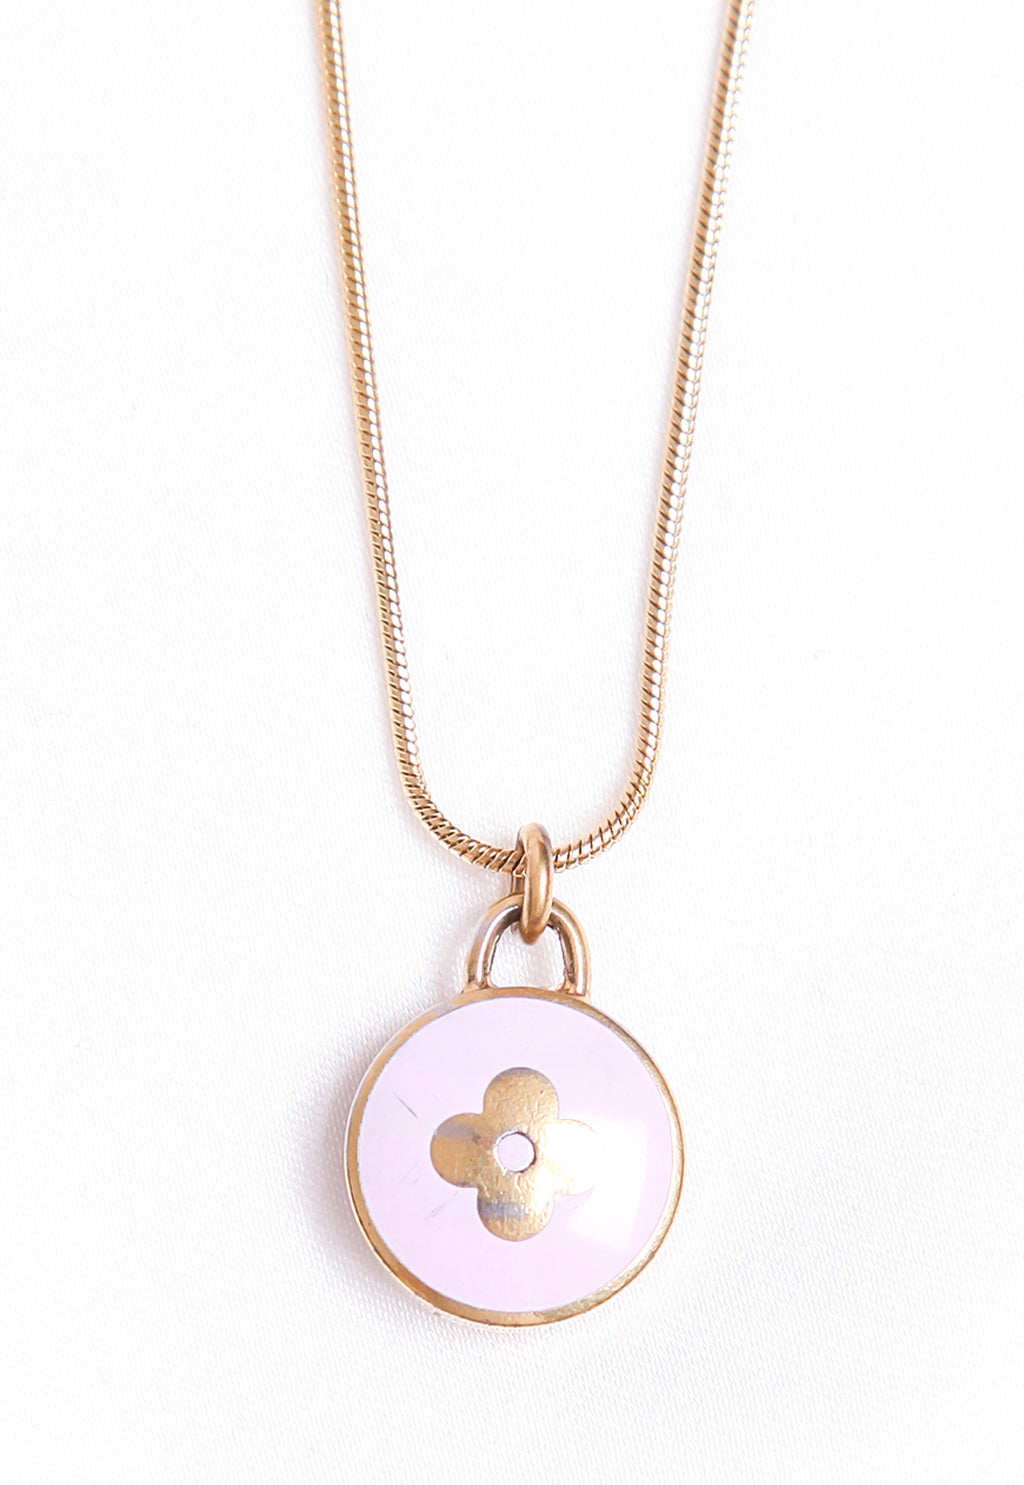 Reworked Louis Vuitton Lilac Round Flower Pendant Necklace